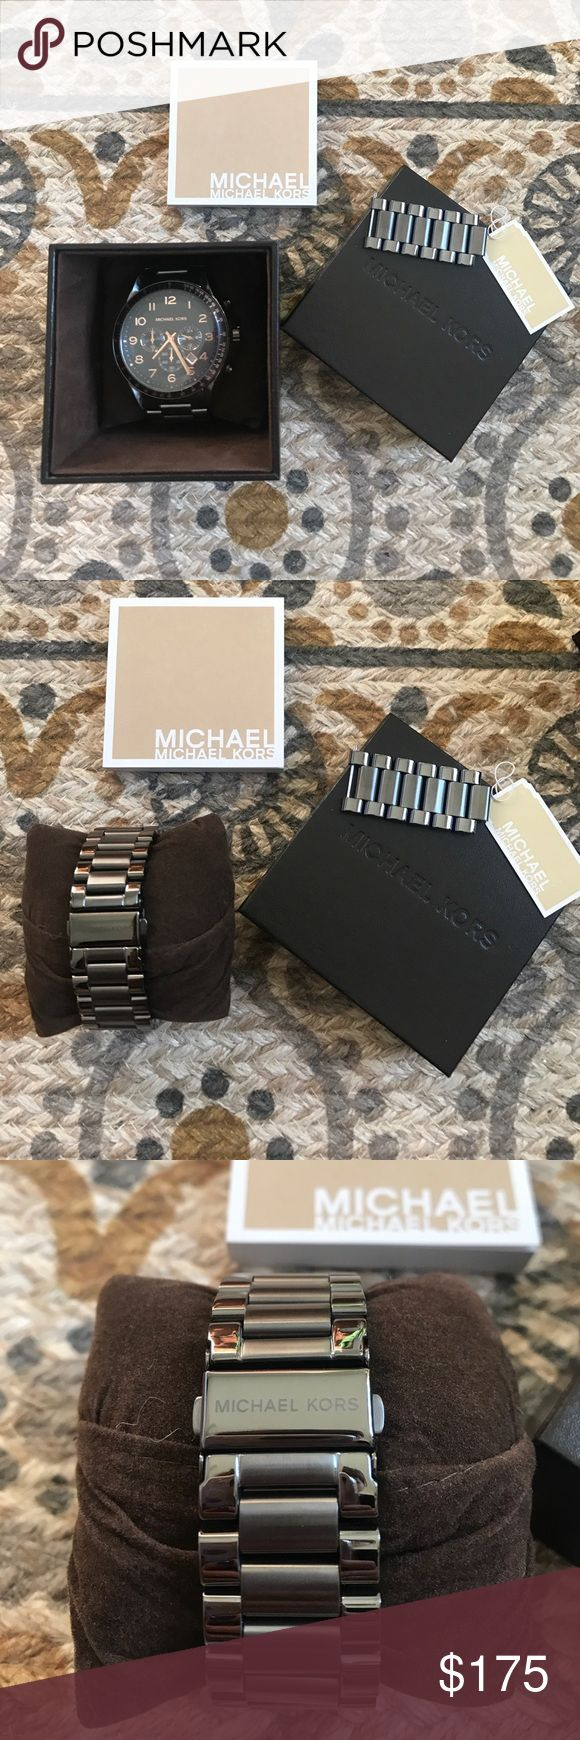 🎉Brand New Michael Kors Watch🎉 Woman's Oversized All Stainless Steel Black and Rose Gold Michael Kors watch! Includes is the original tag, extra latches, instruction manual and original box. Michael Kors Accessories Watches